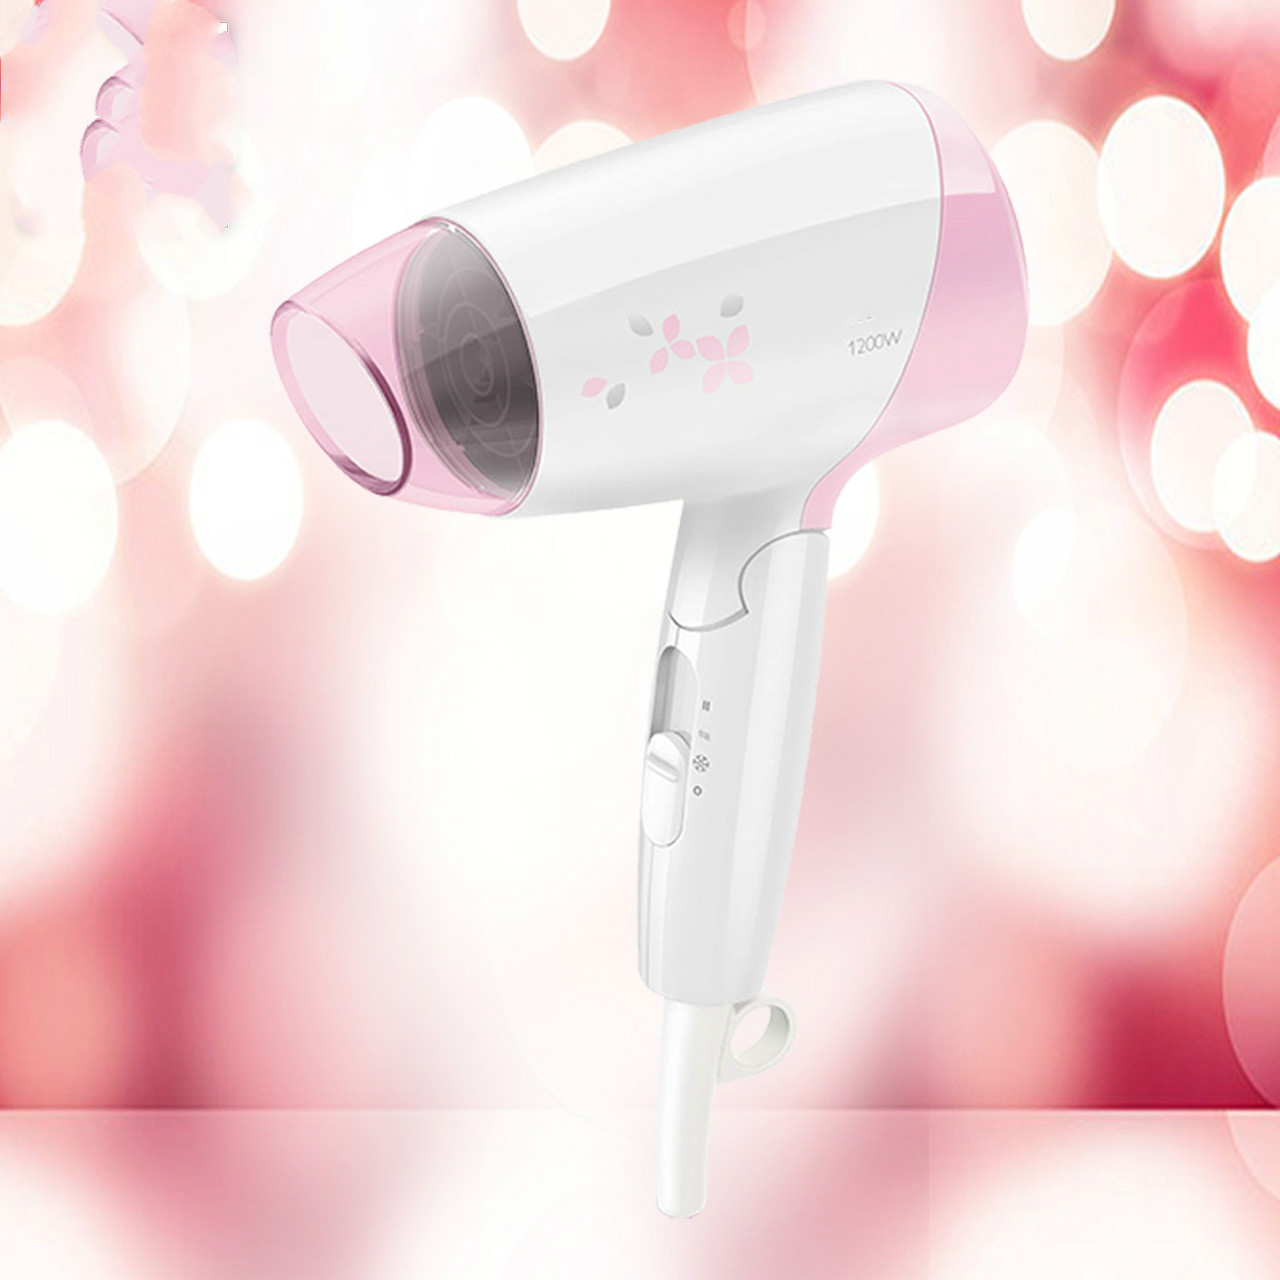 Hair Dryers electric dryer HP8120 household thermostat folding hot and cold wind power mini NEW цена и фото